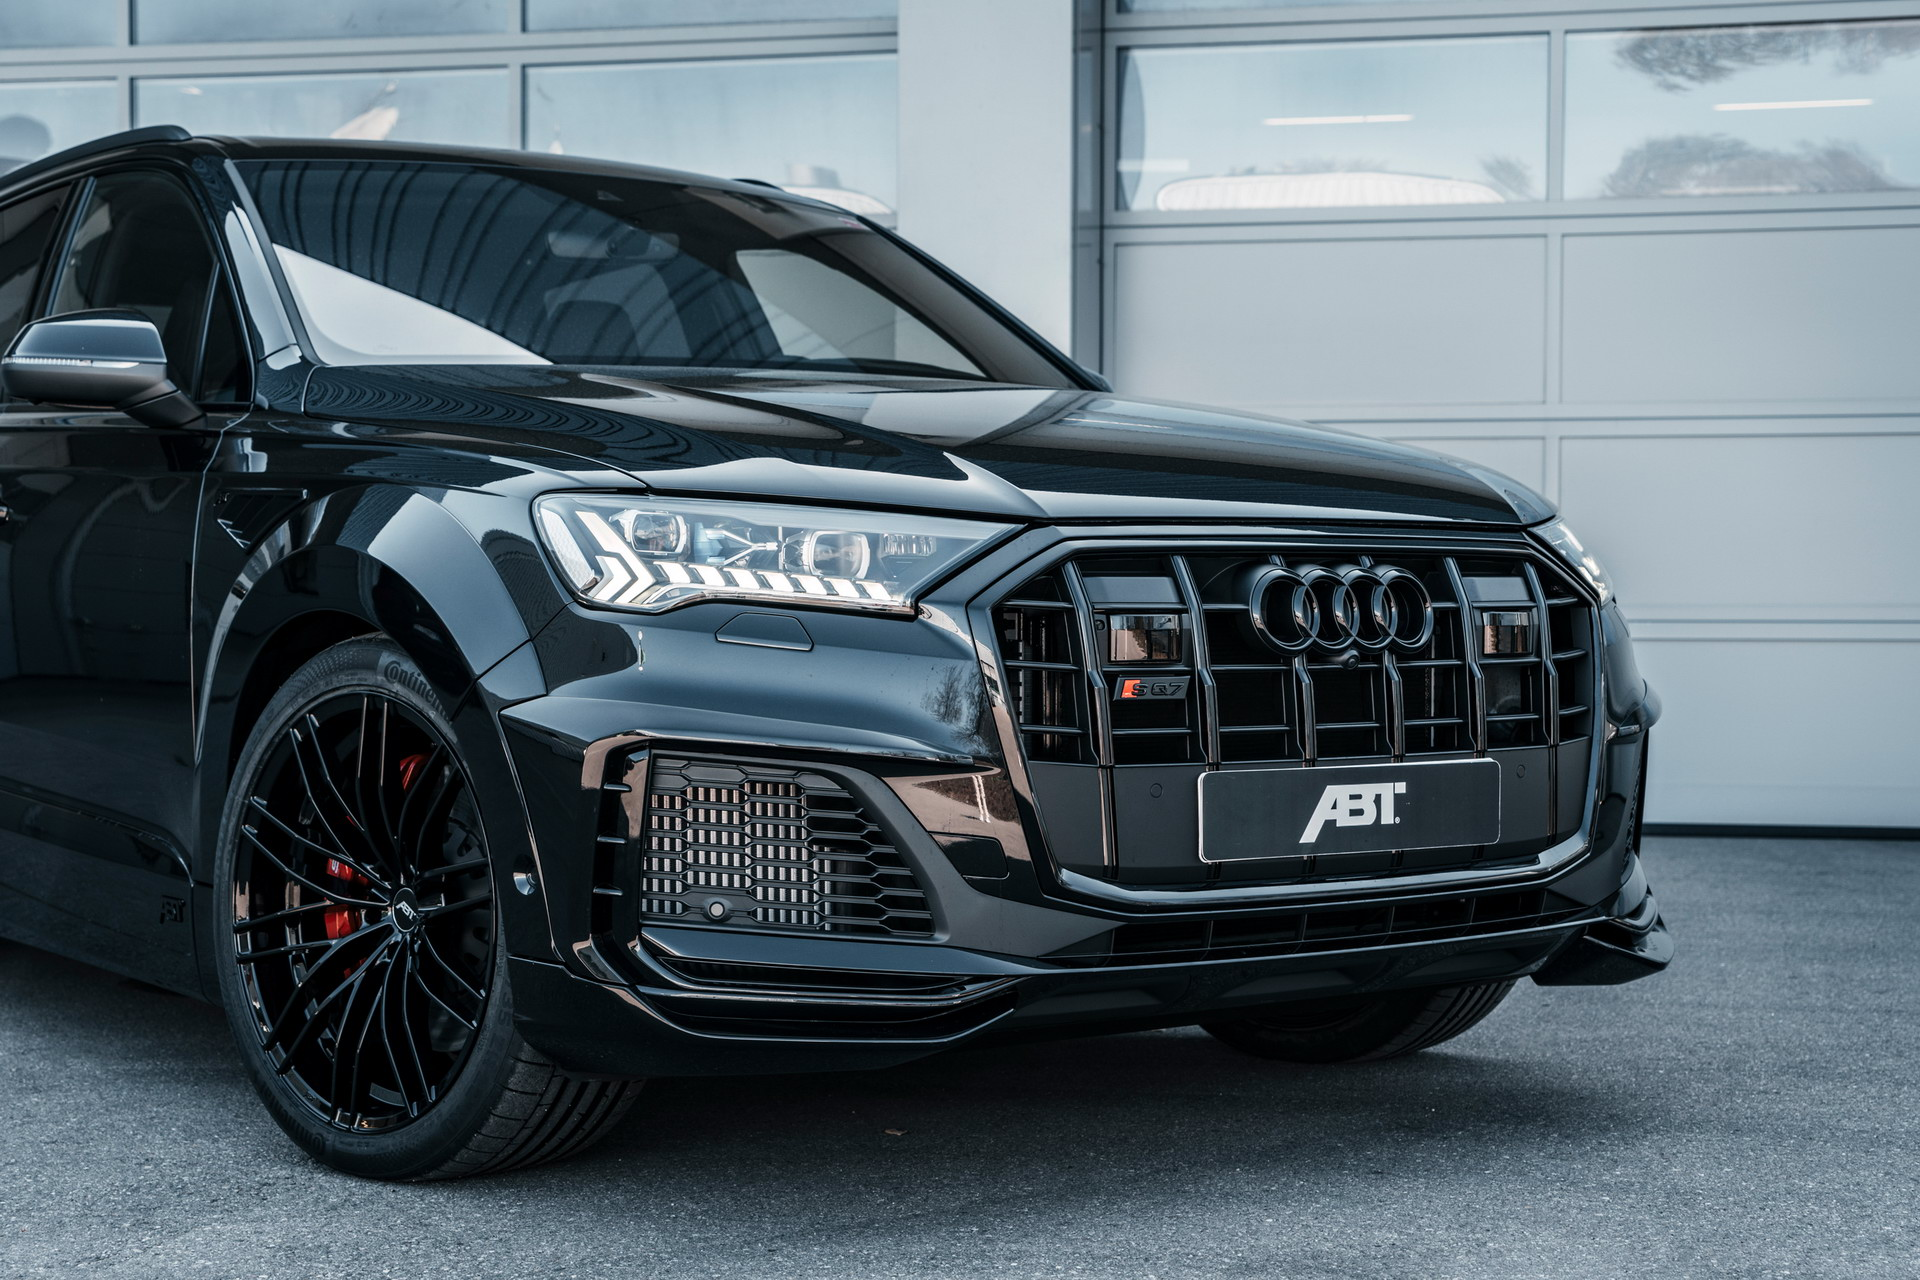 Ever since Lamborghini unveiled its ultra-fast, ultra-expensive SUV named Urus, people on salaries all over the world have been frantically searching for reasons not to buy it. If the above sounds familiar, here's another compelling reason, brought to you by ABT Sportsline.